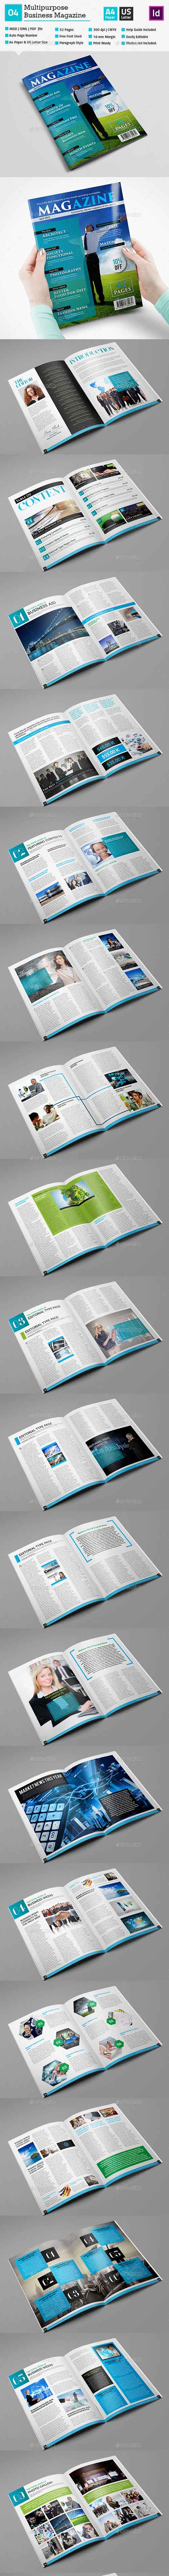 Multipurpose Magazine Template Indesign 52 Page V4 10823679